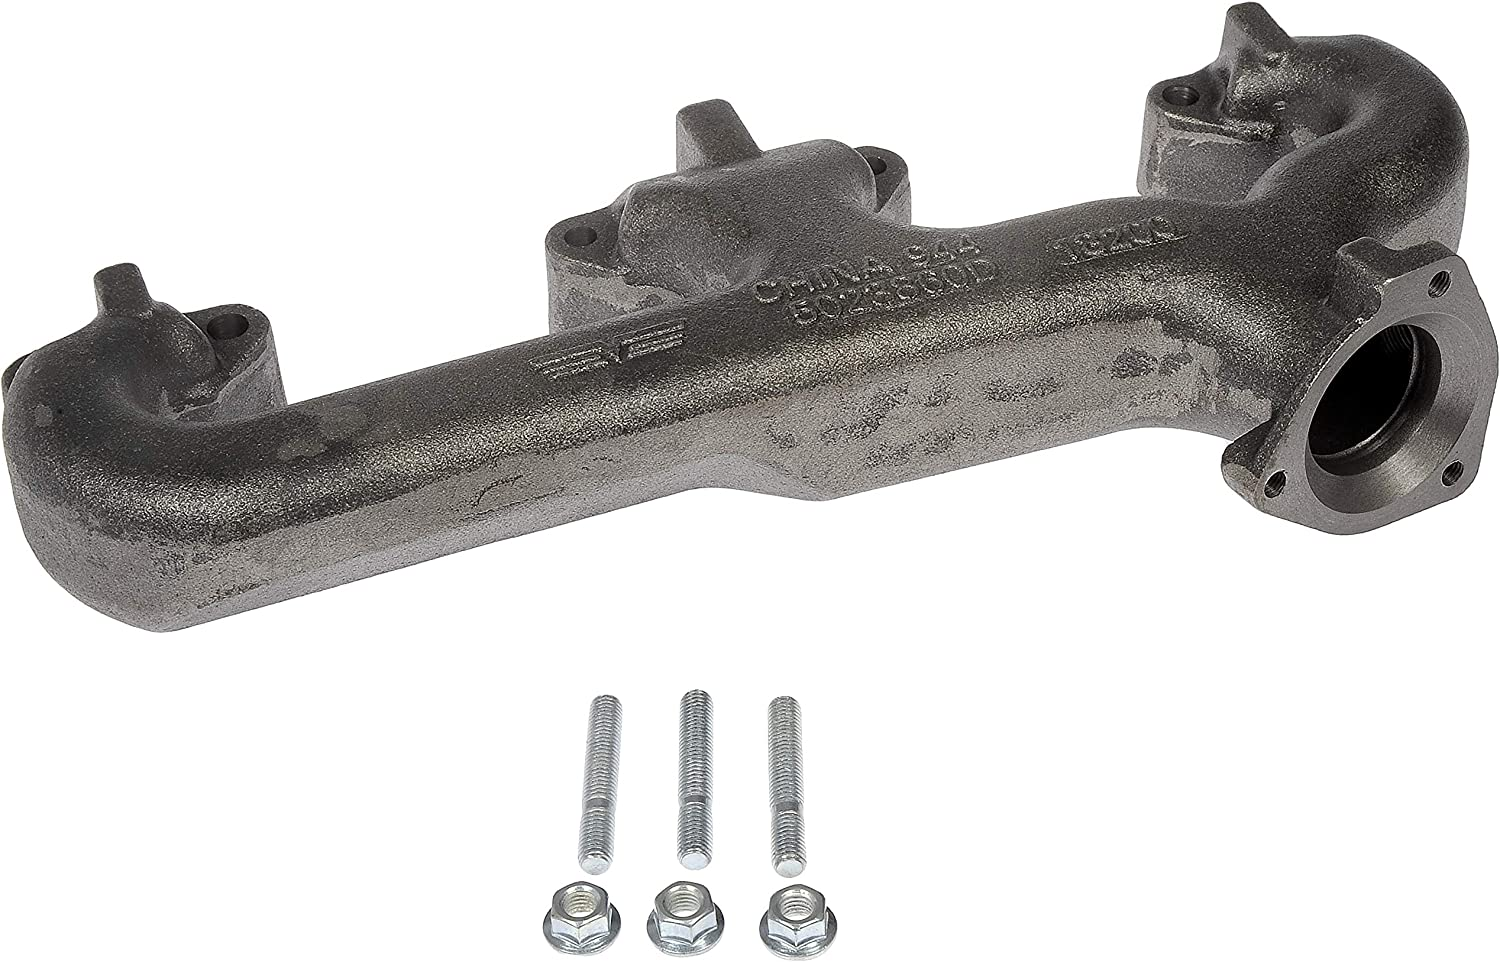 Dorman 674-860 Drivers Side online shopping Exhaust Kit Manifold famous For Mode Select